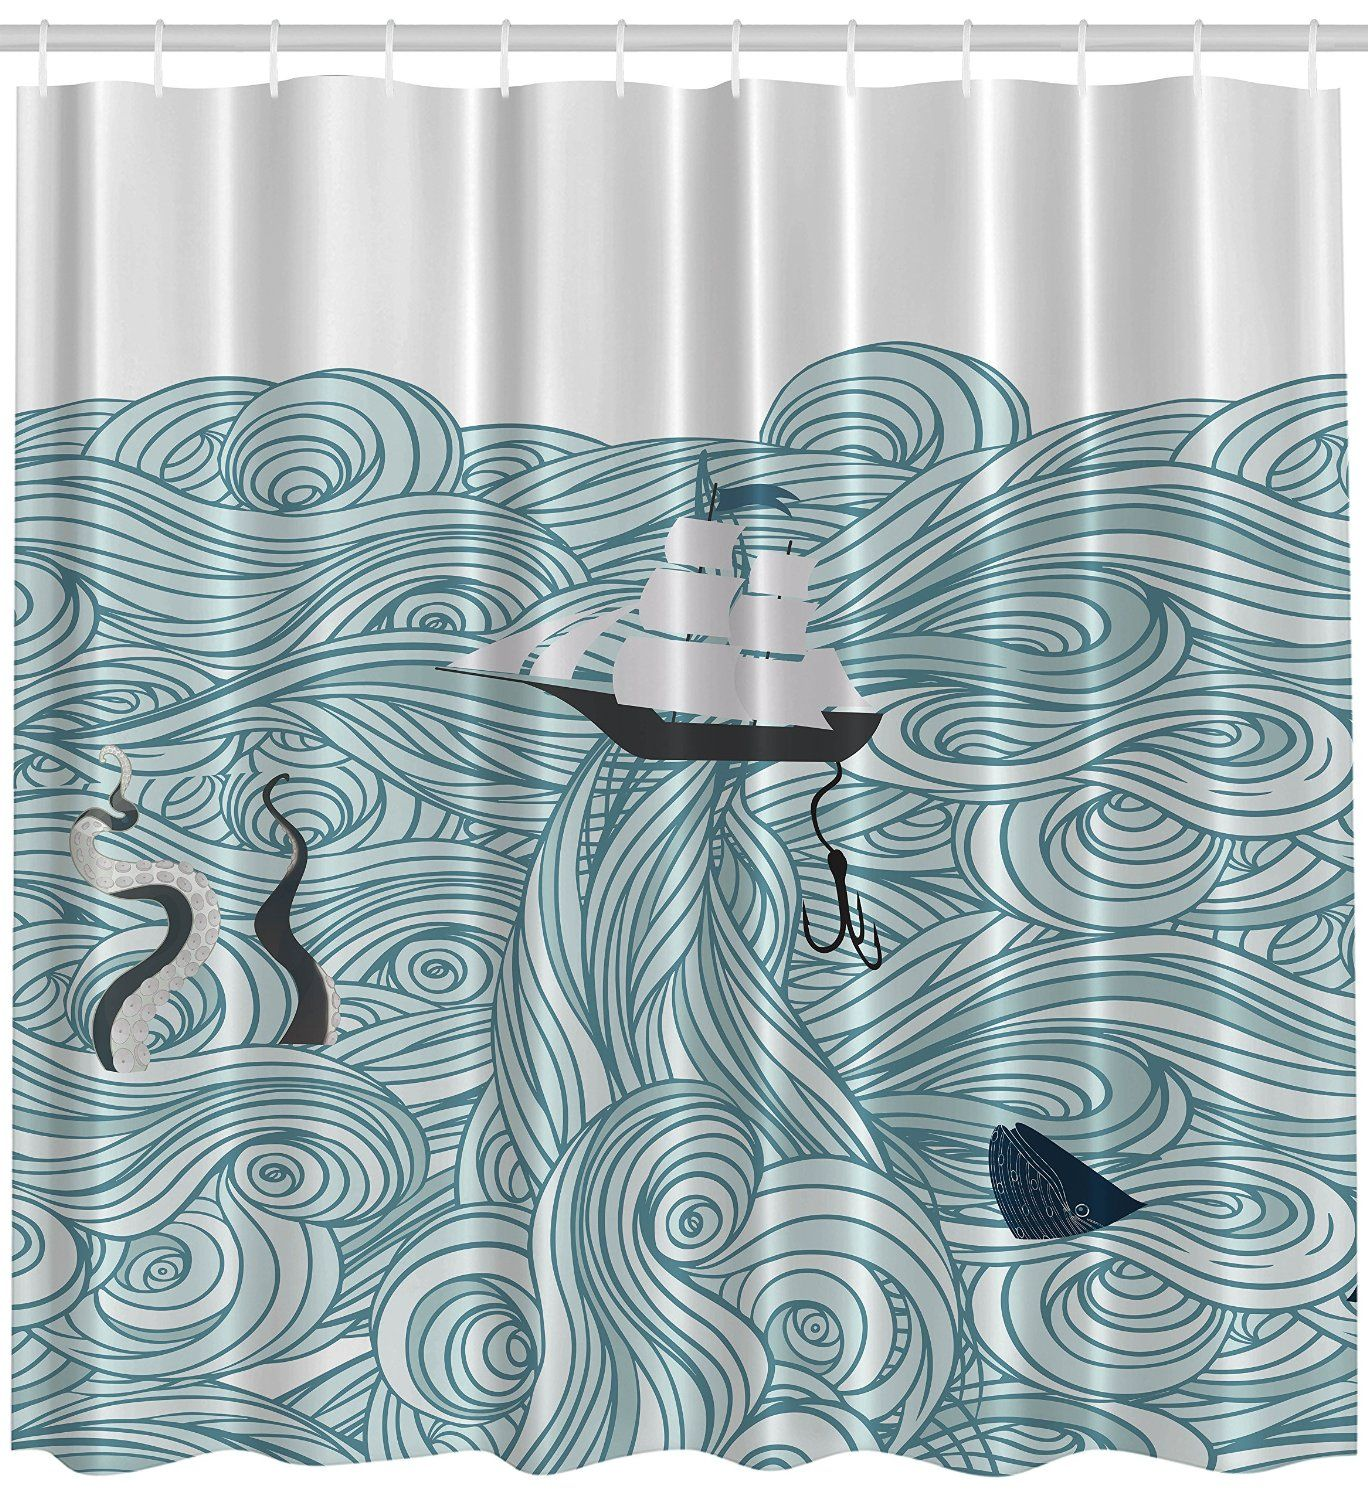 Ocean shower curtain - Amazonsmile Japanese Great Waves Ocean Style Sail Boat Fishing Lure Octopus Tentacles Whale Shark Illustration